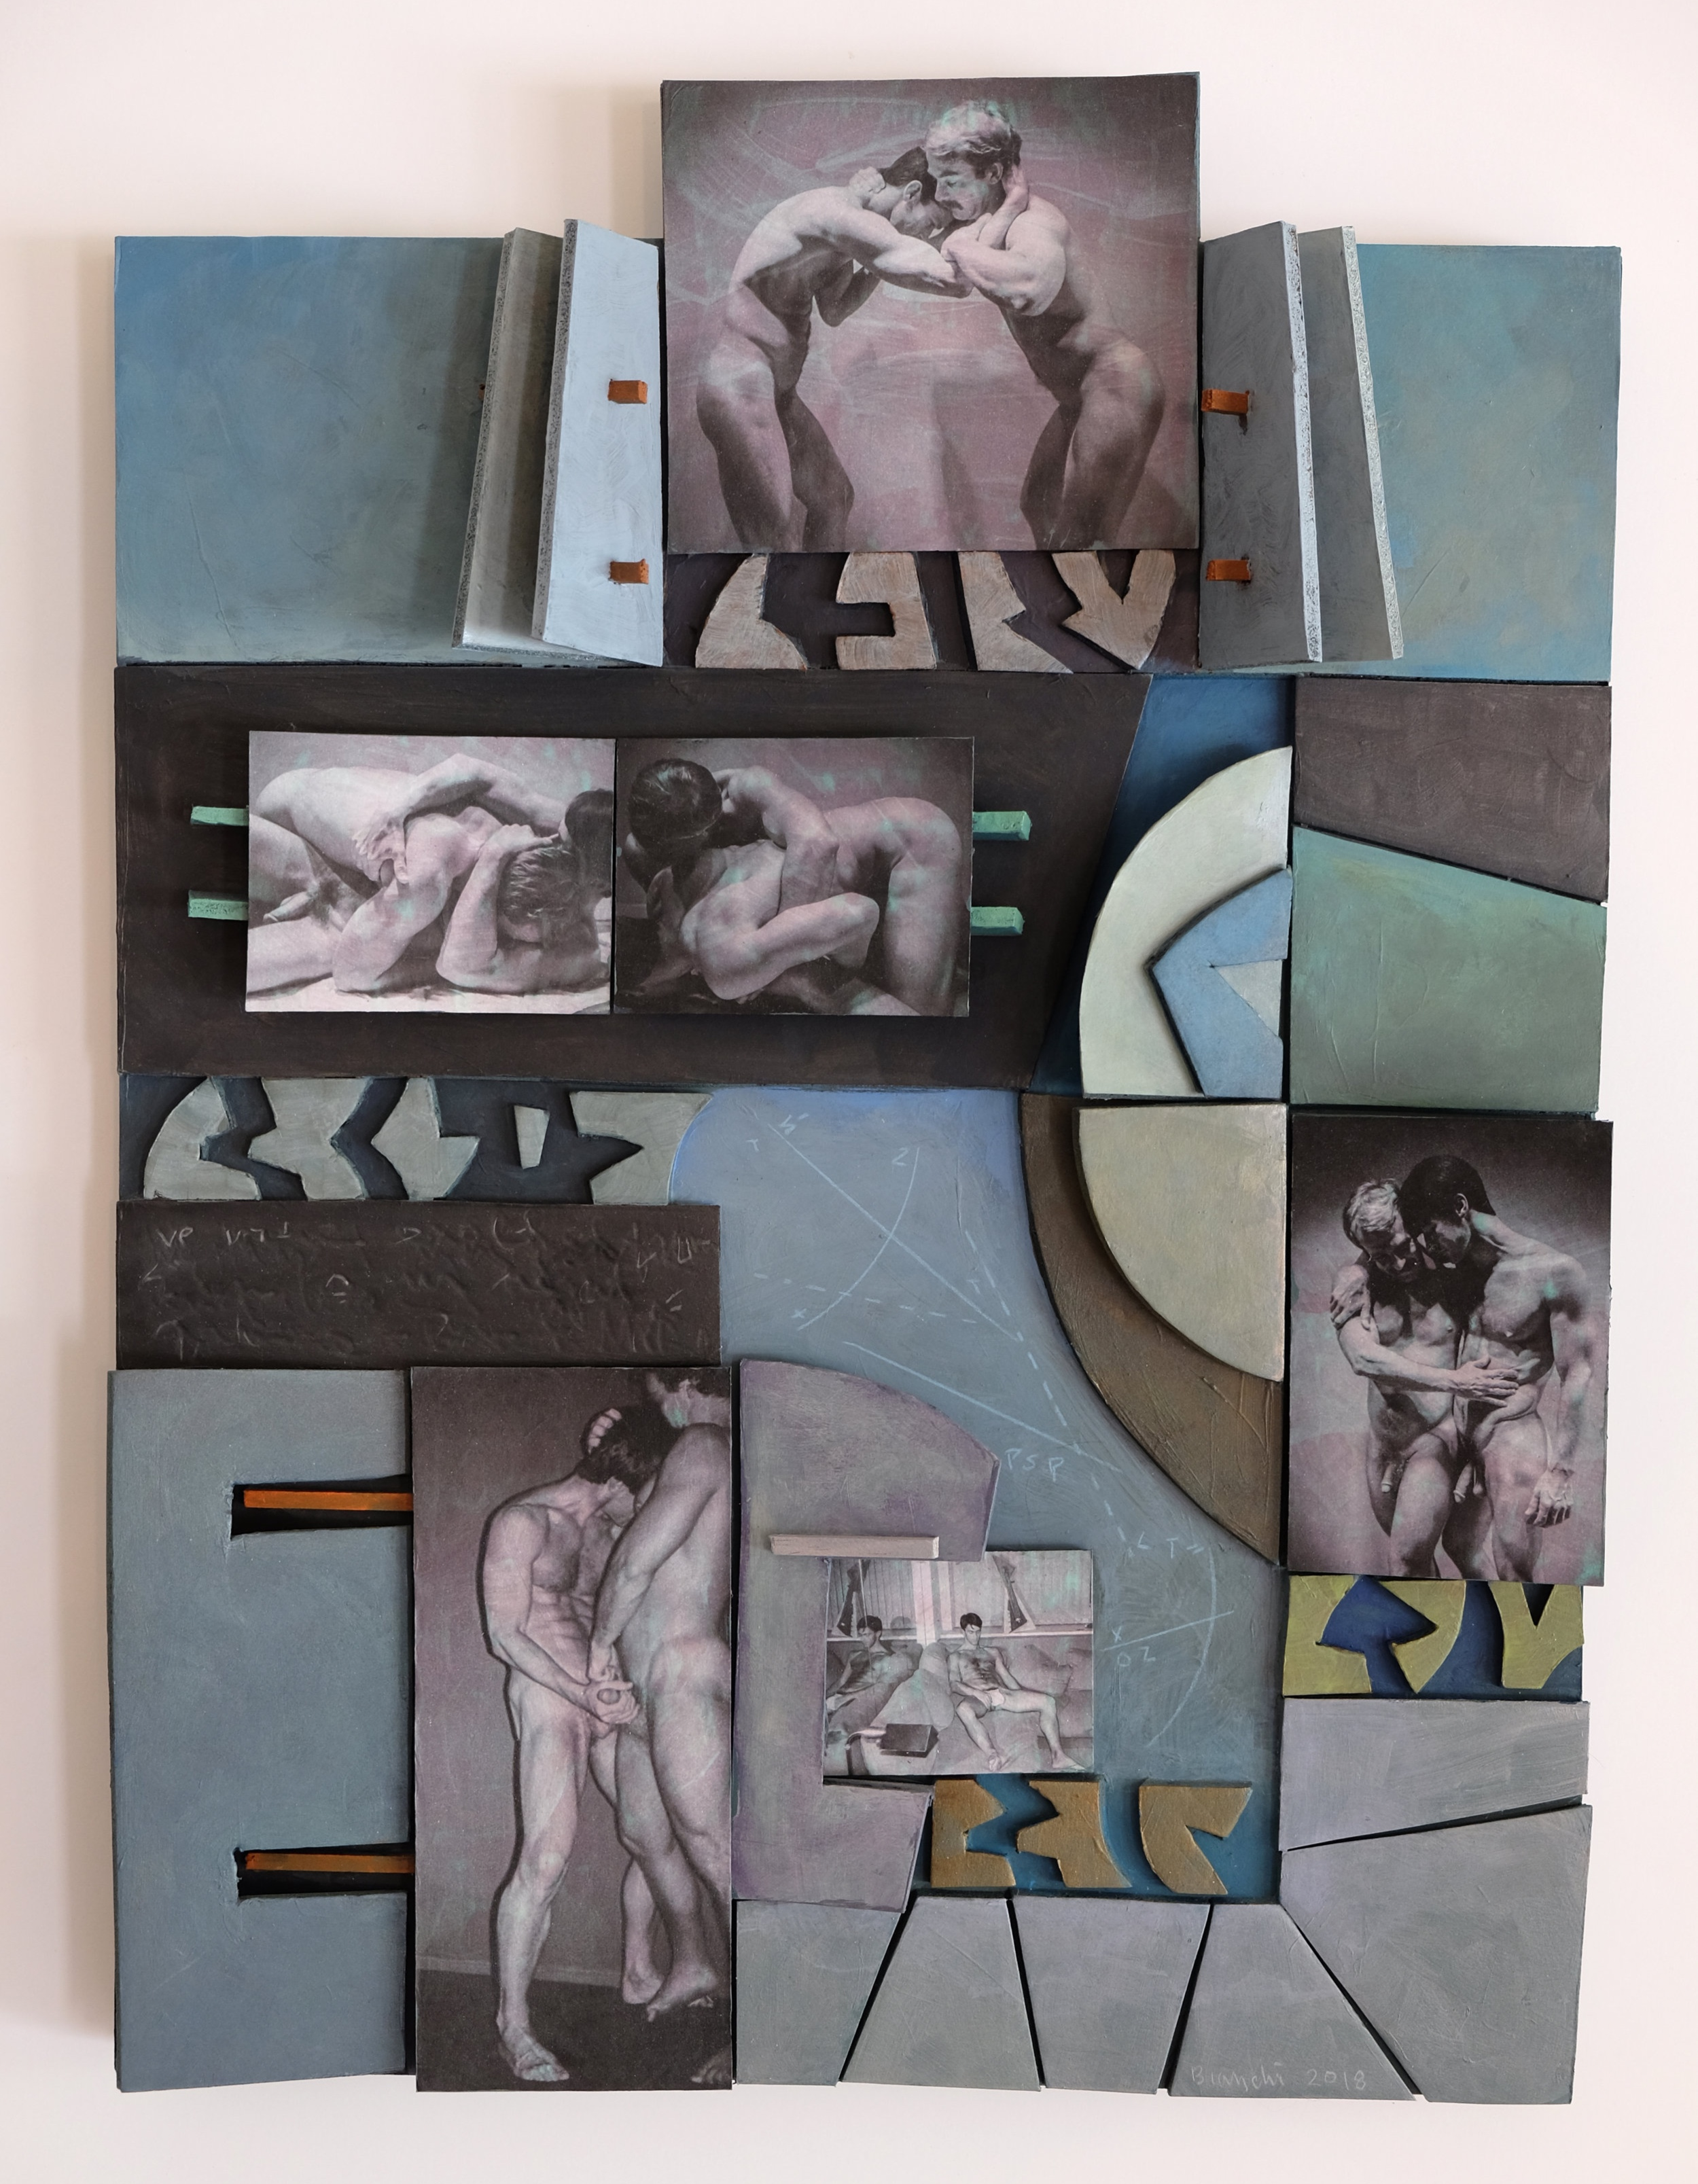 Bob and Mike 1 , 2018 63 E 9th Street Tablets Canvas, museum board, wood, paper, acrylics, metallic paint, ink jet photographs 21.5 x 16 x 3.25 in (54.6 x 40.6 x 8.3 cm)